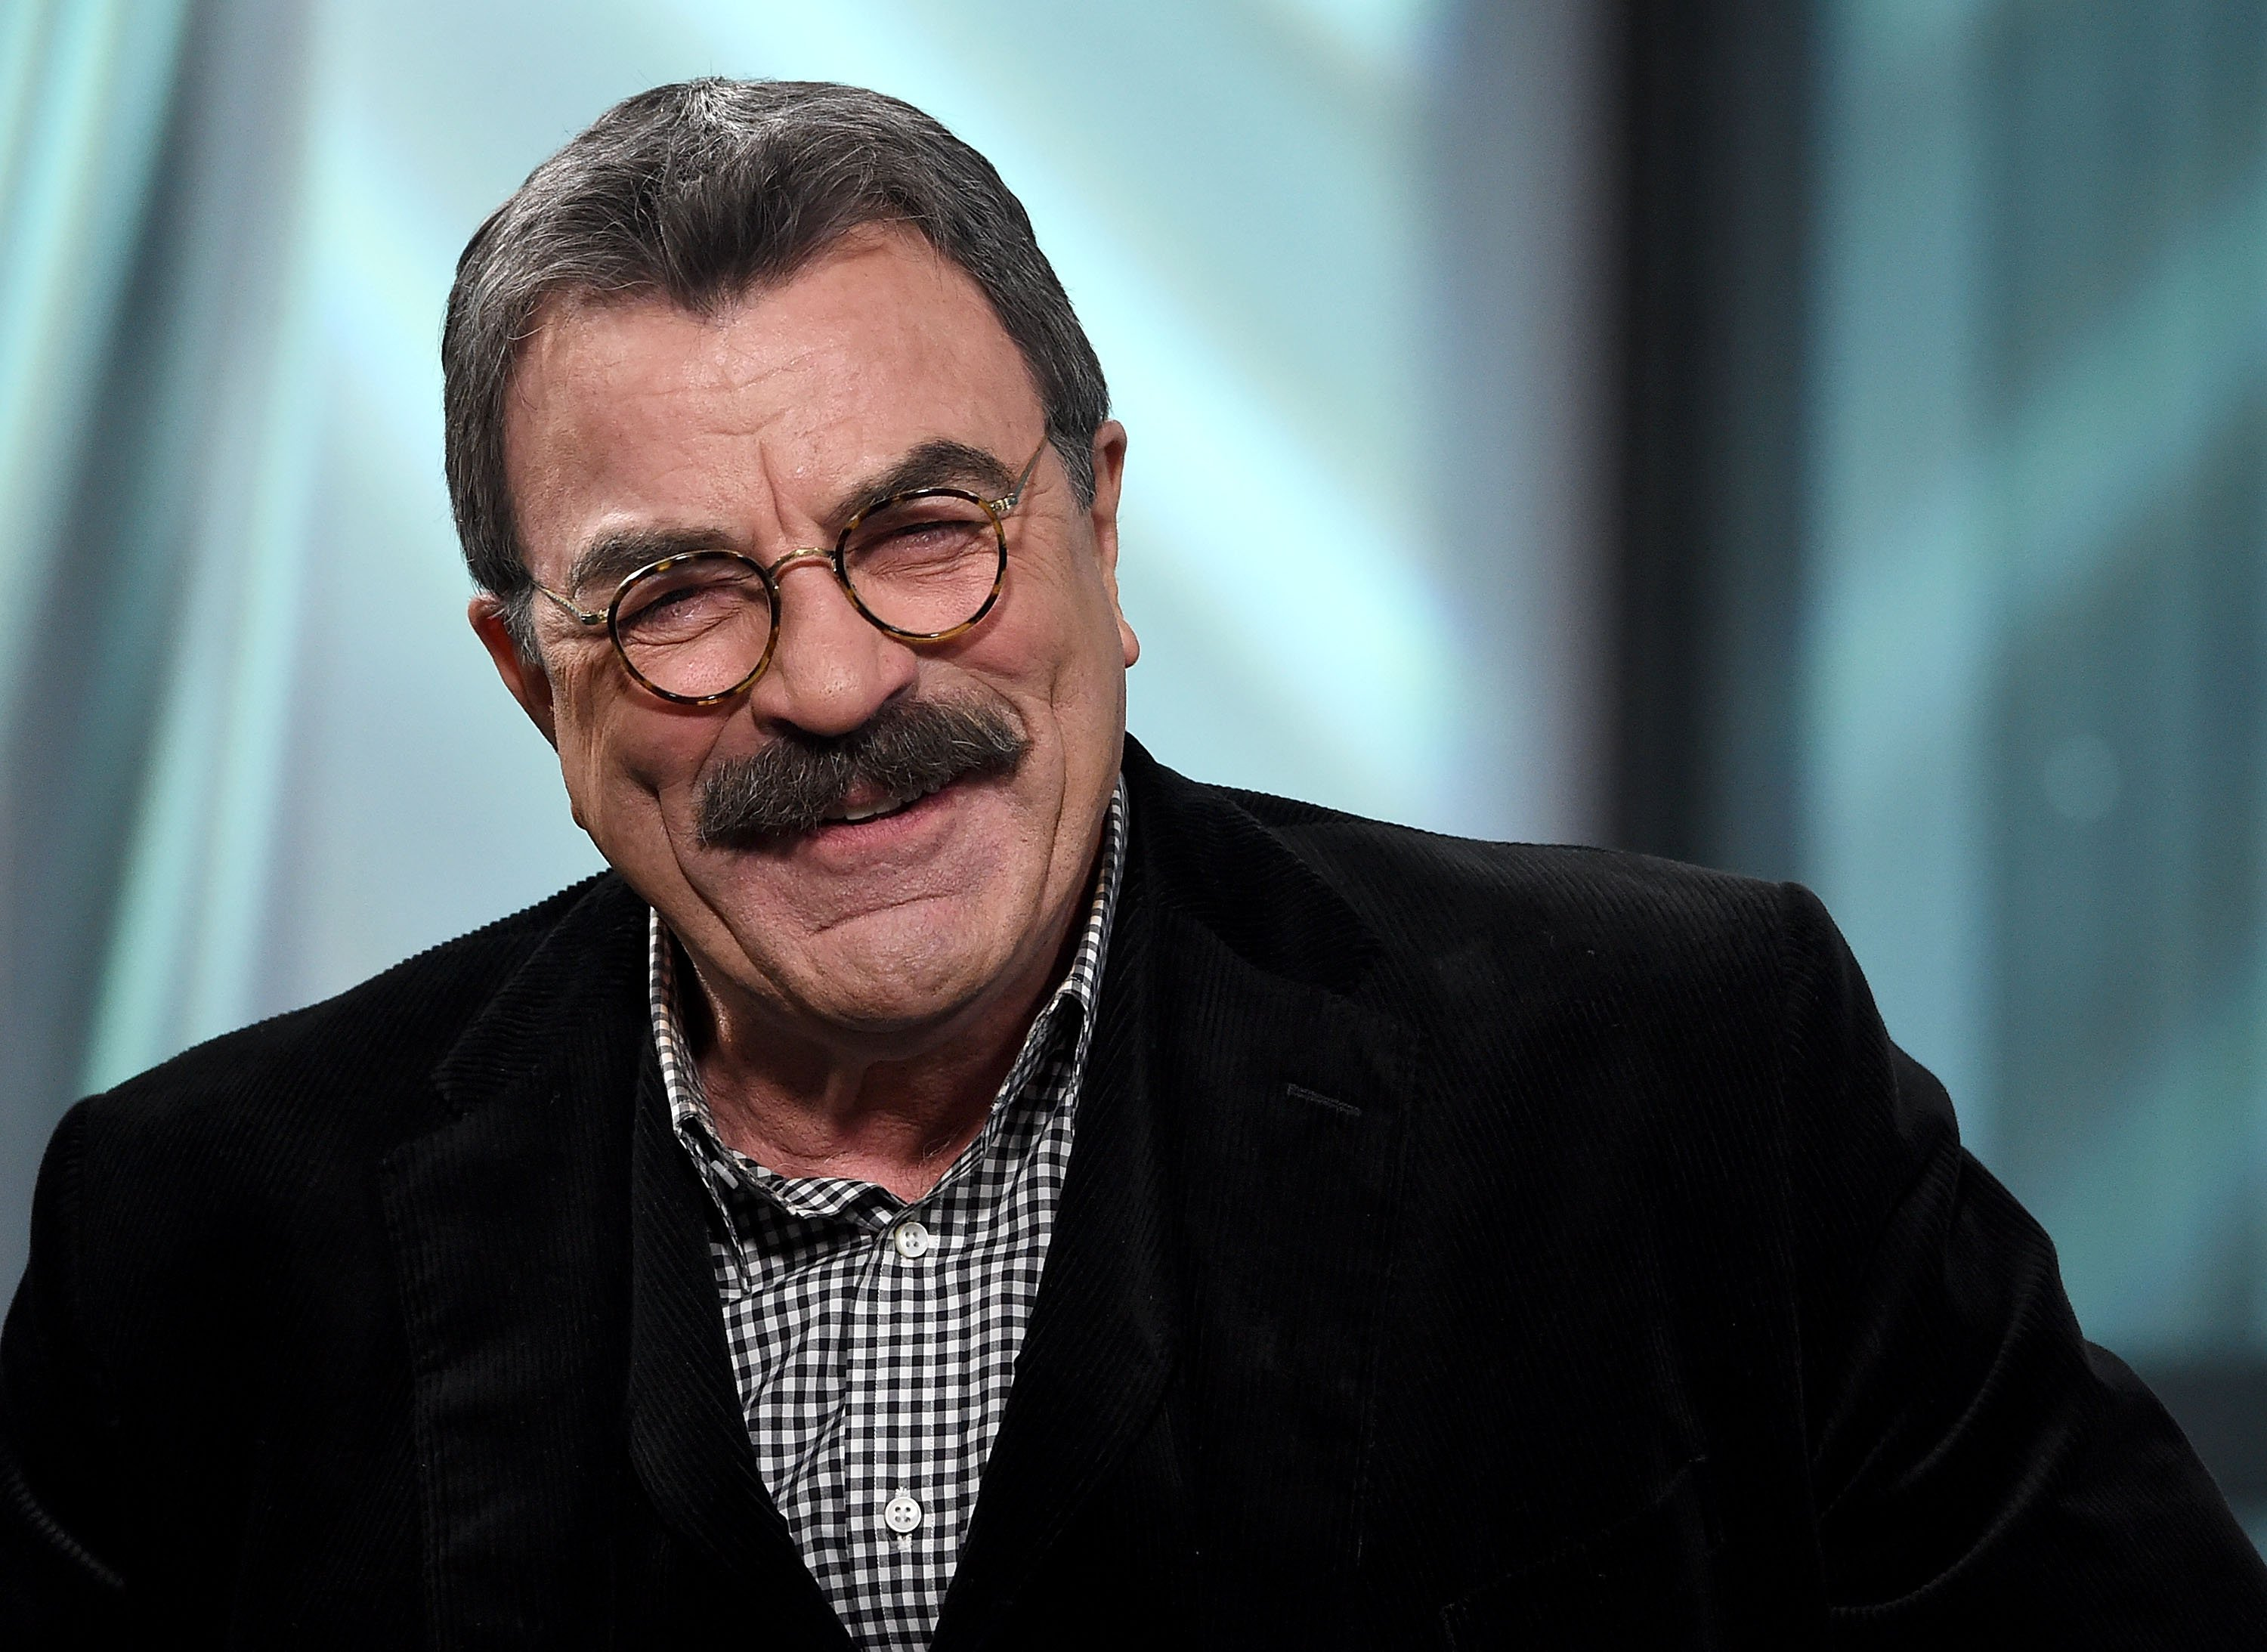 Image Credits: Getty Images | Tom Selleck gives interview